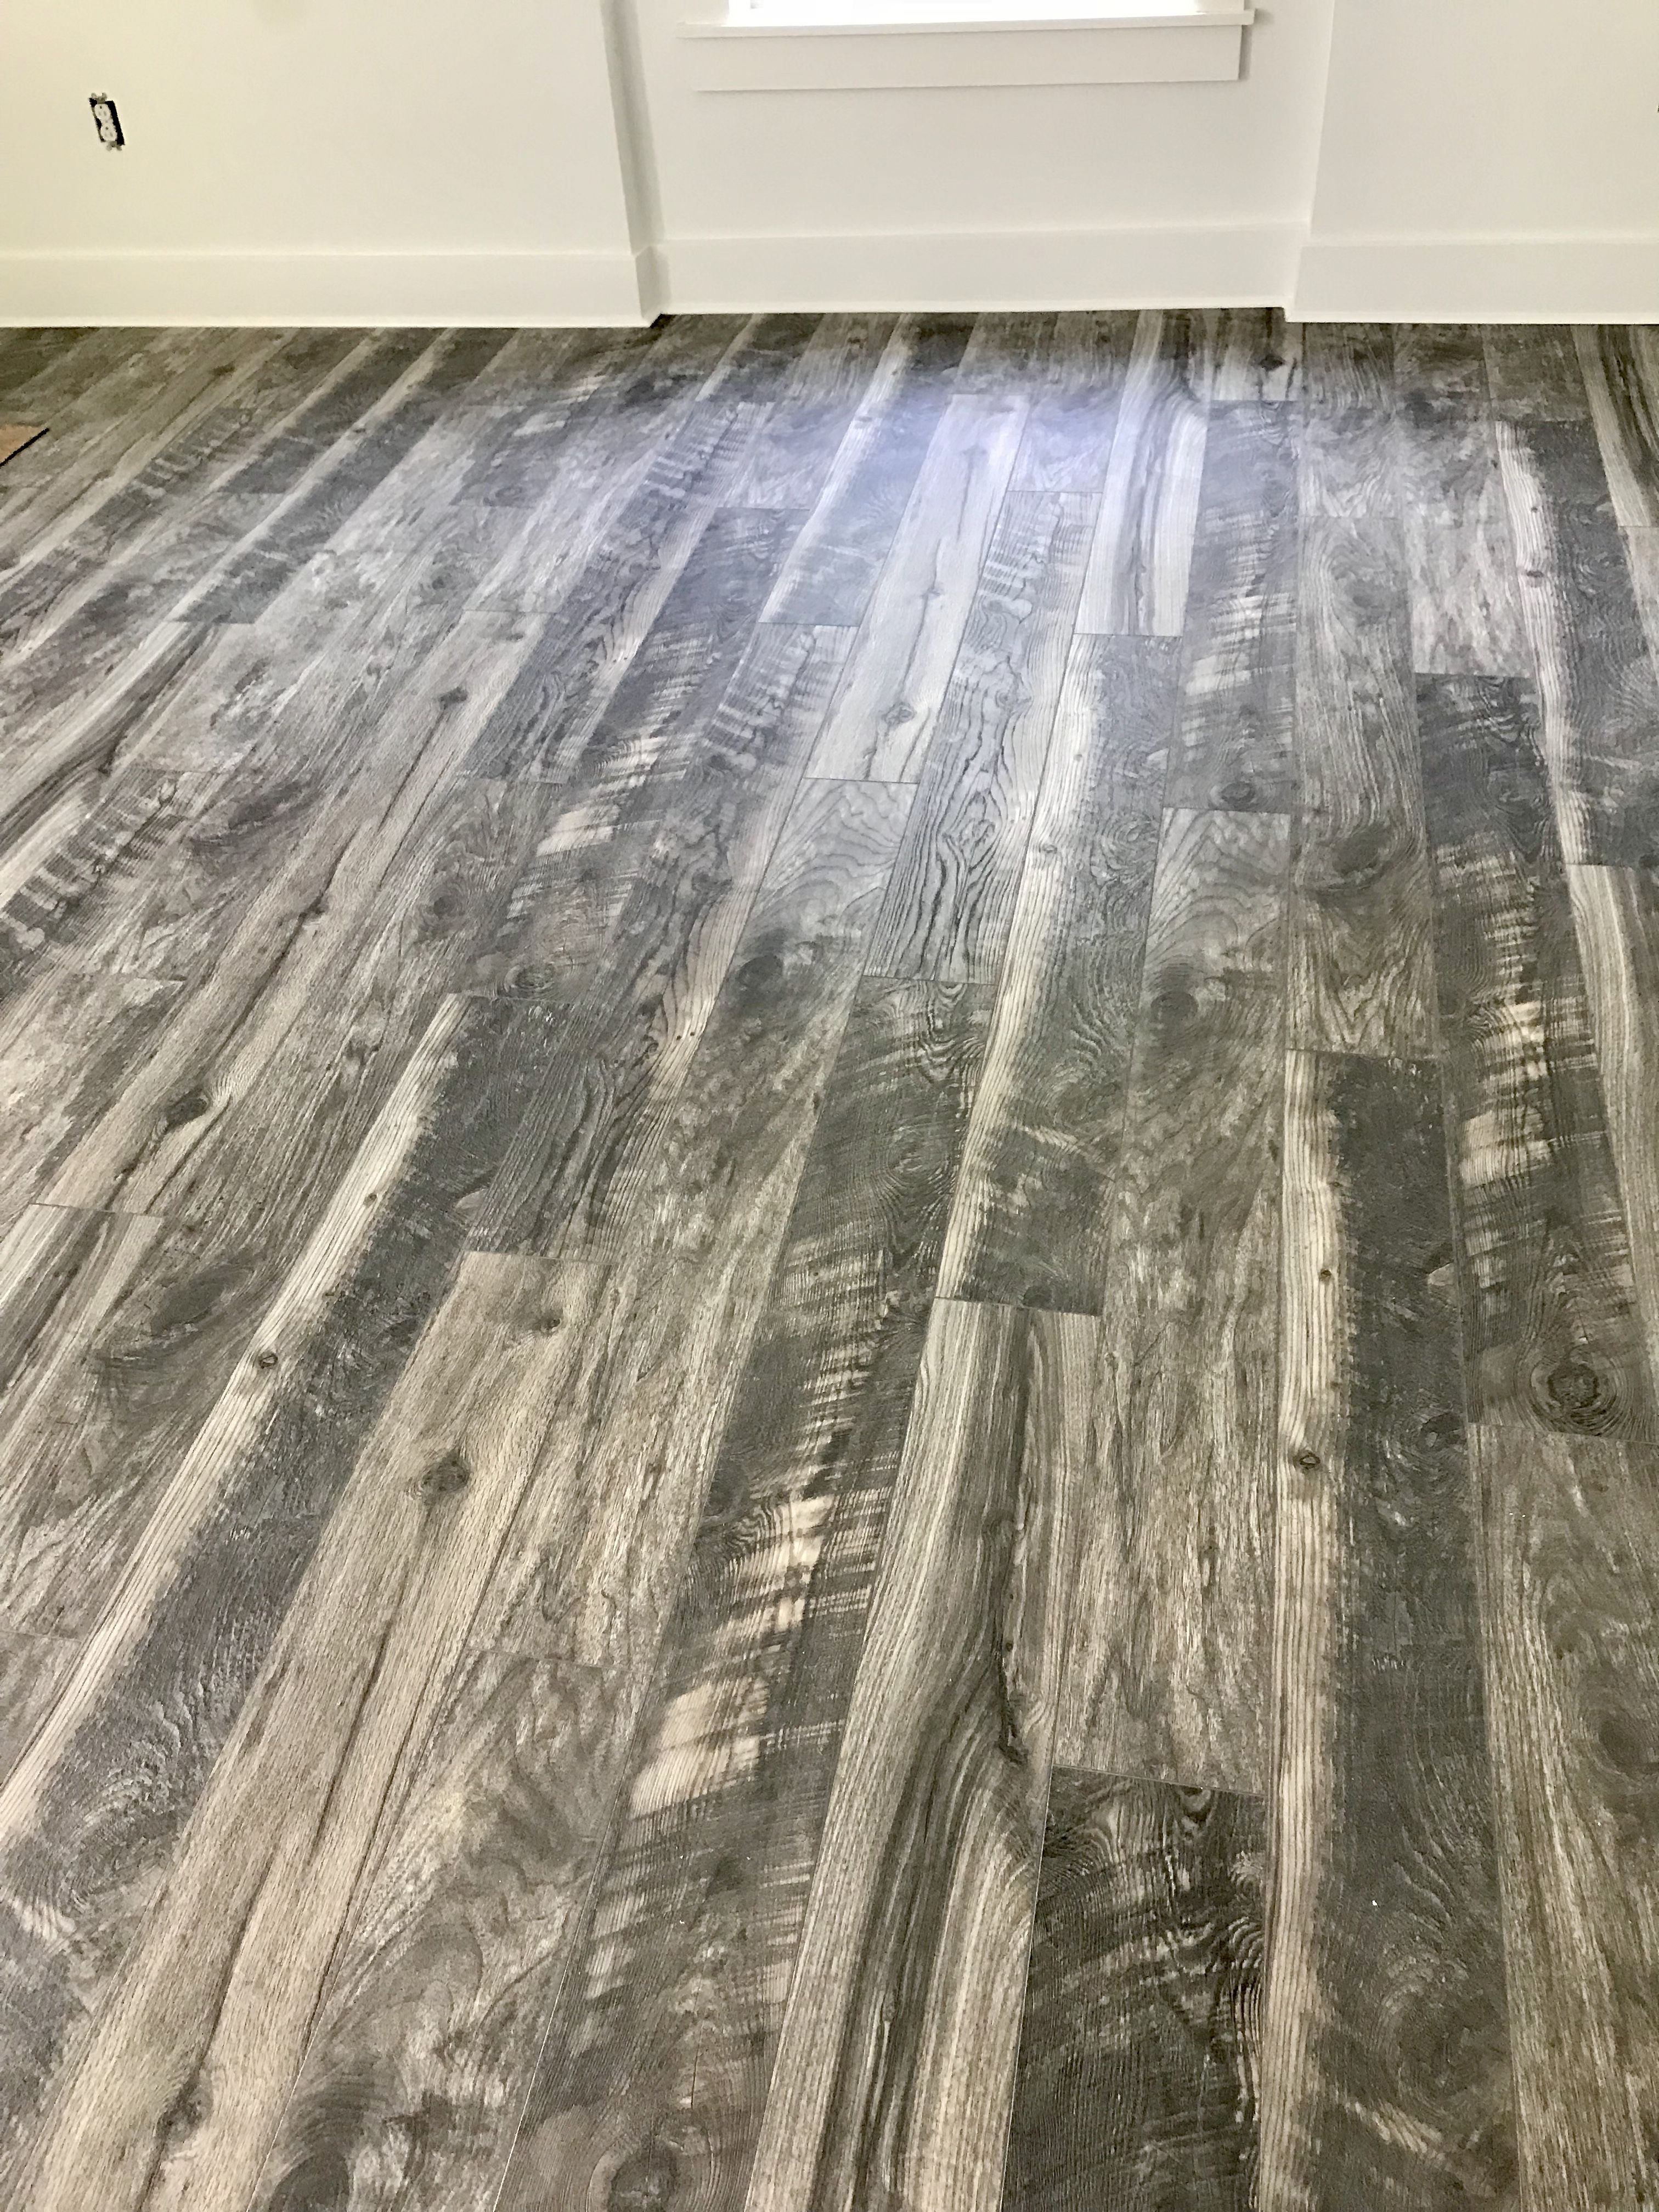 Home Decorators Collection Cinder Wood Fusion 12 Mm Thick X 6 1 8 In Wide X 50 4 5 In Length Laminate Flooring 17 44 Sq Ft Case Hc07 Flooring Fake Wood Flooring House Flooring